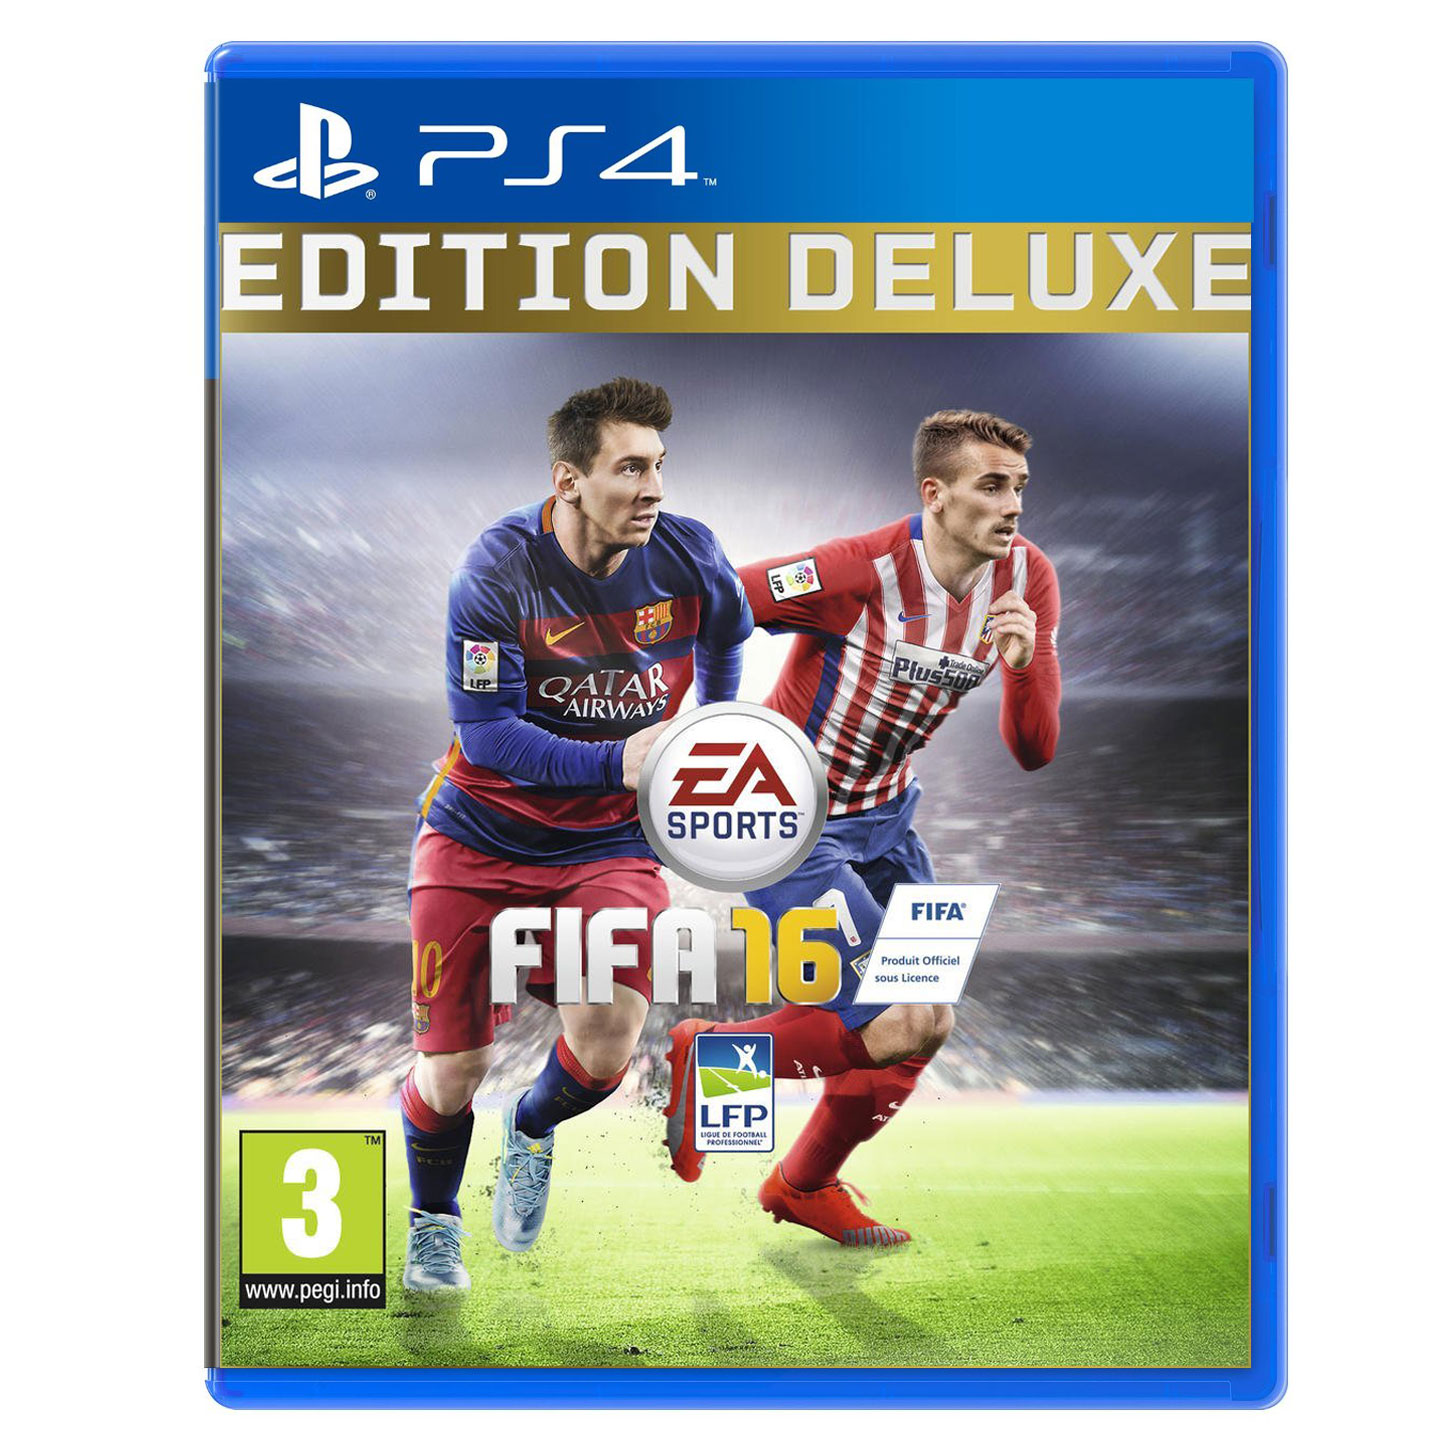 fifa 16 edition deluxe ps4 jeux ps4 electronic arts. Black Bedroom Furniture Sets. Home Design Ideas